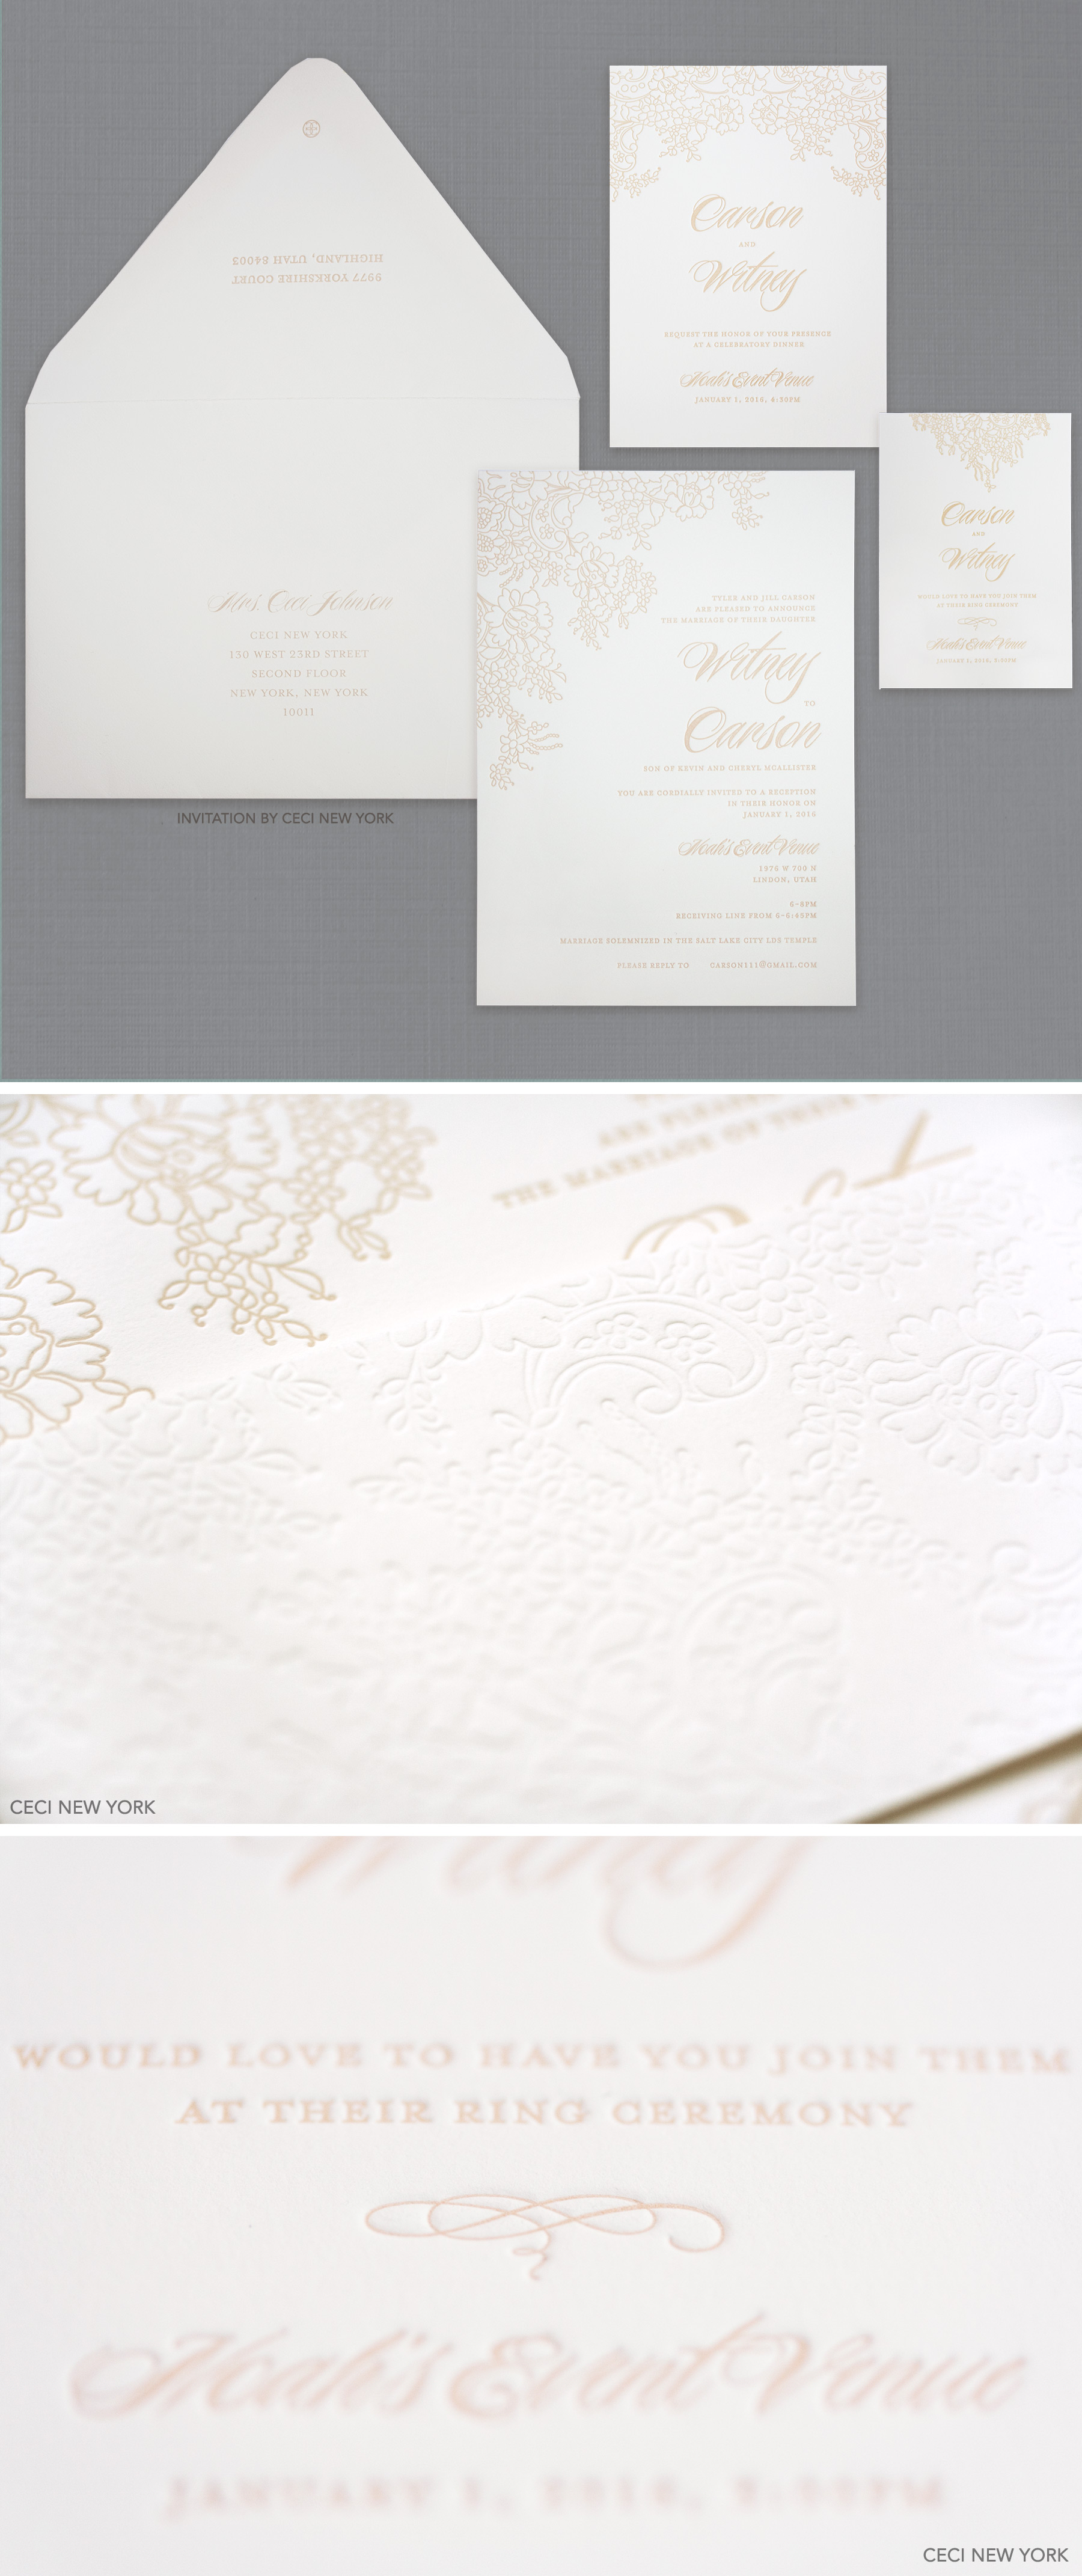 Luxury Wedding Invitations by Ceci New York - Our Muse - Winter Wonderland in Salt Lake City - Take a look at Witney Carson's wintry wedding in Salt Lake City - ceci new york, wedding invitations, classic wedding invitations, luxury, letterpress, white, ivory, sand, elegant wedding invitations, belly band, winter wedding, salt lake city, inspiration, simple, celebrity wedding